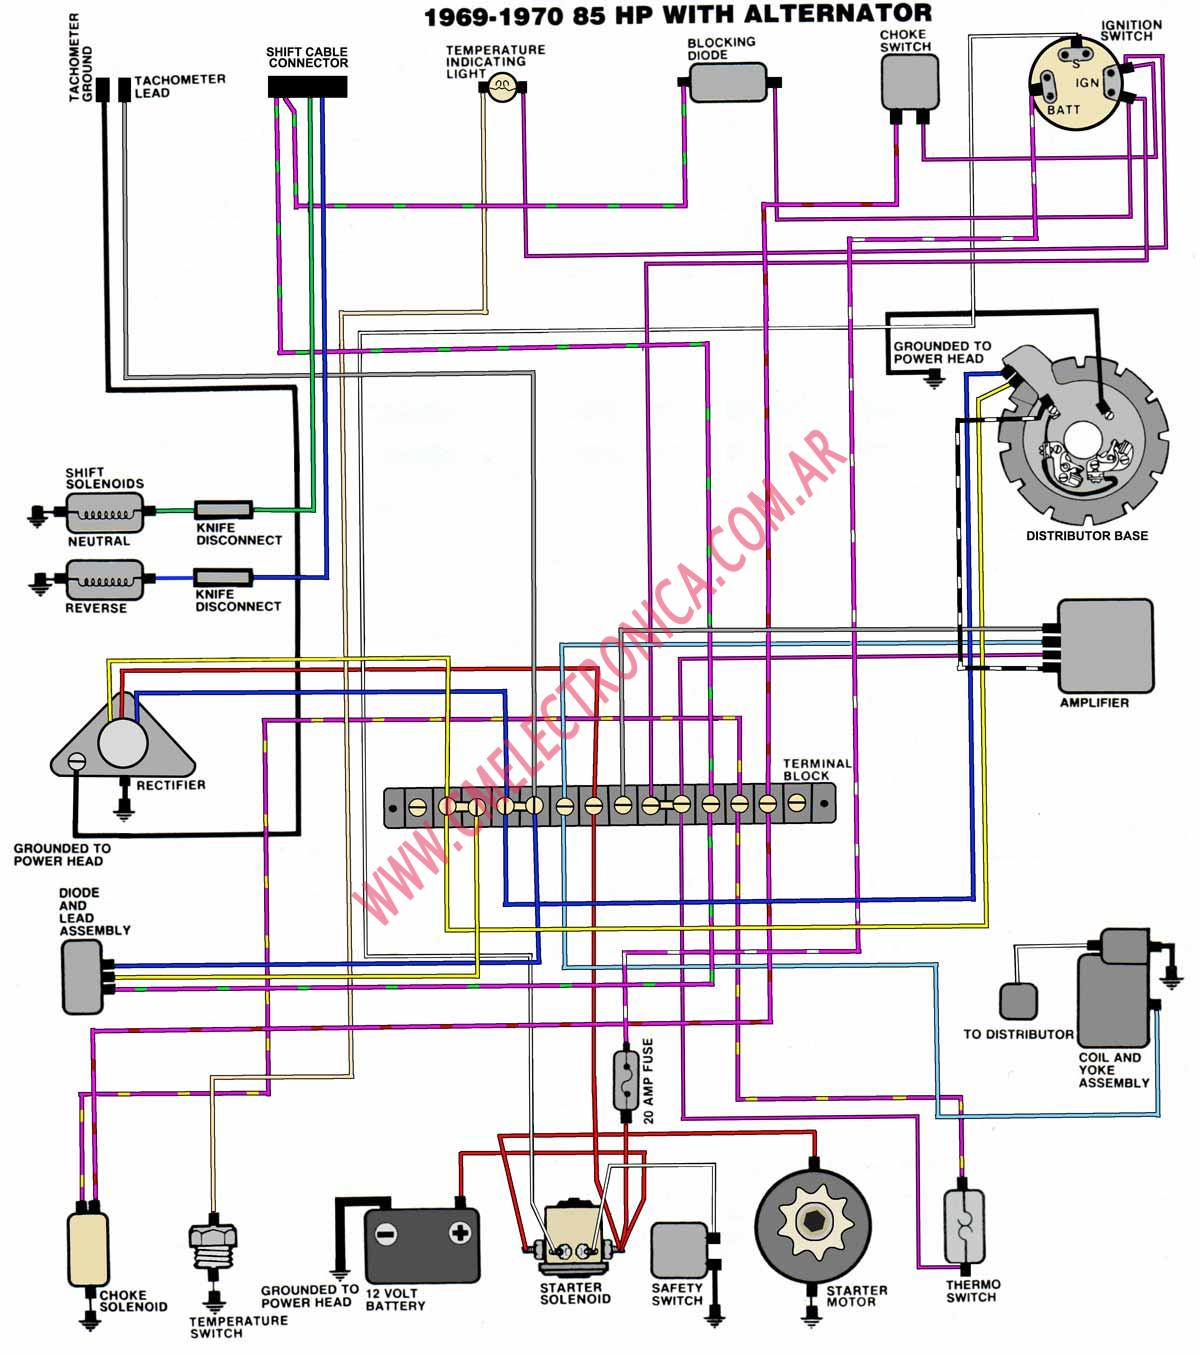 hight resolution of evinrude 70 hp outboard motor wiring diagram evinrude suzuki df90 outboard wiring harness diagram suzuki outboard engine wiring diagram